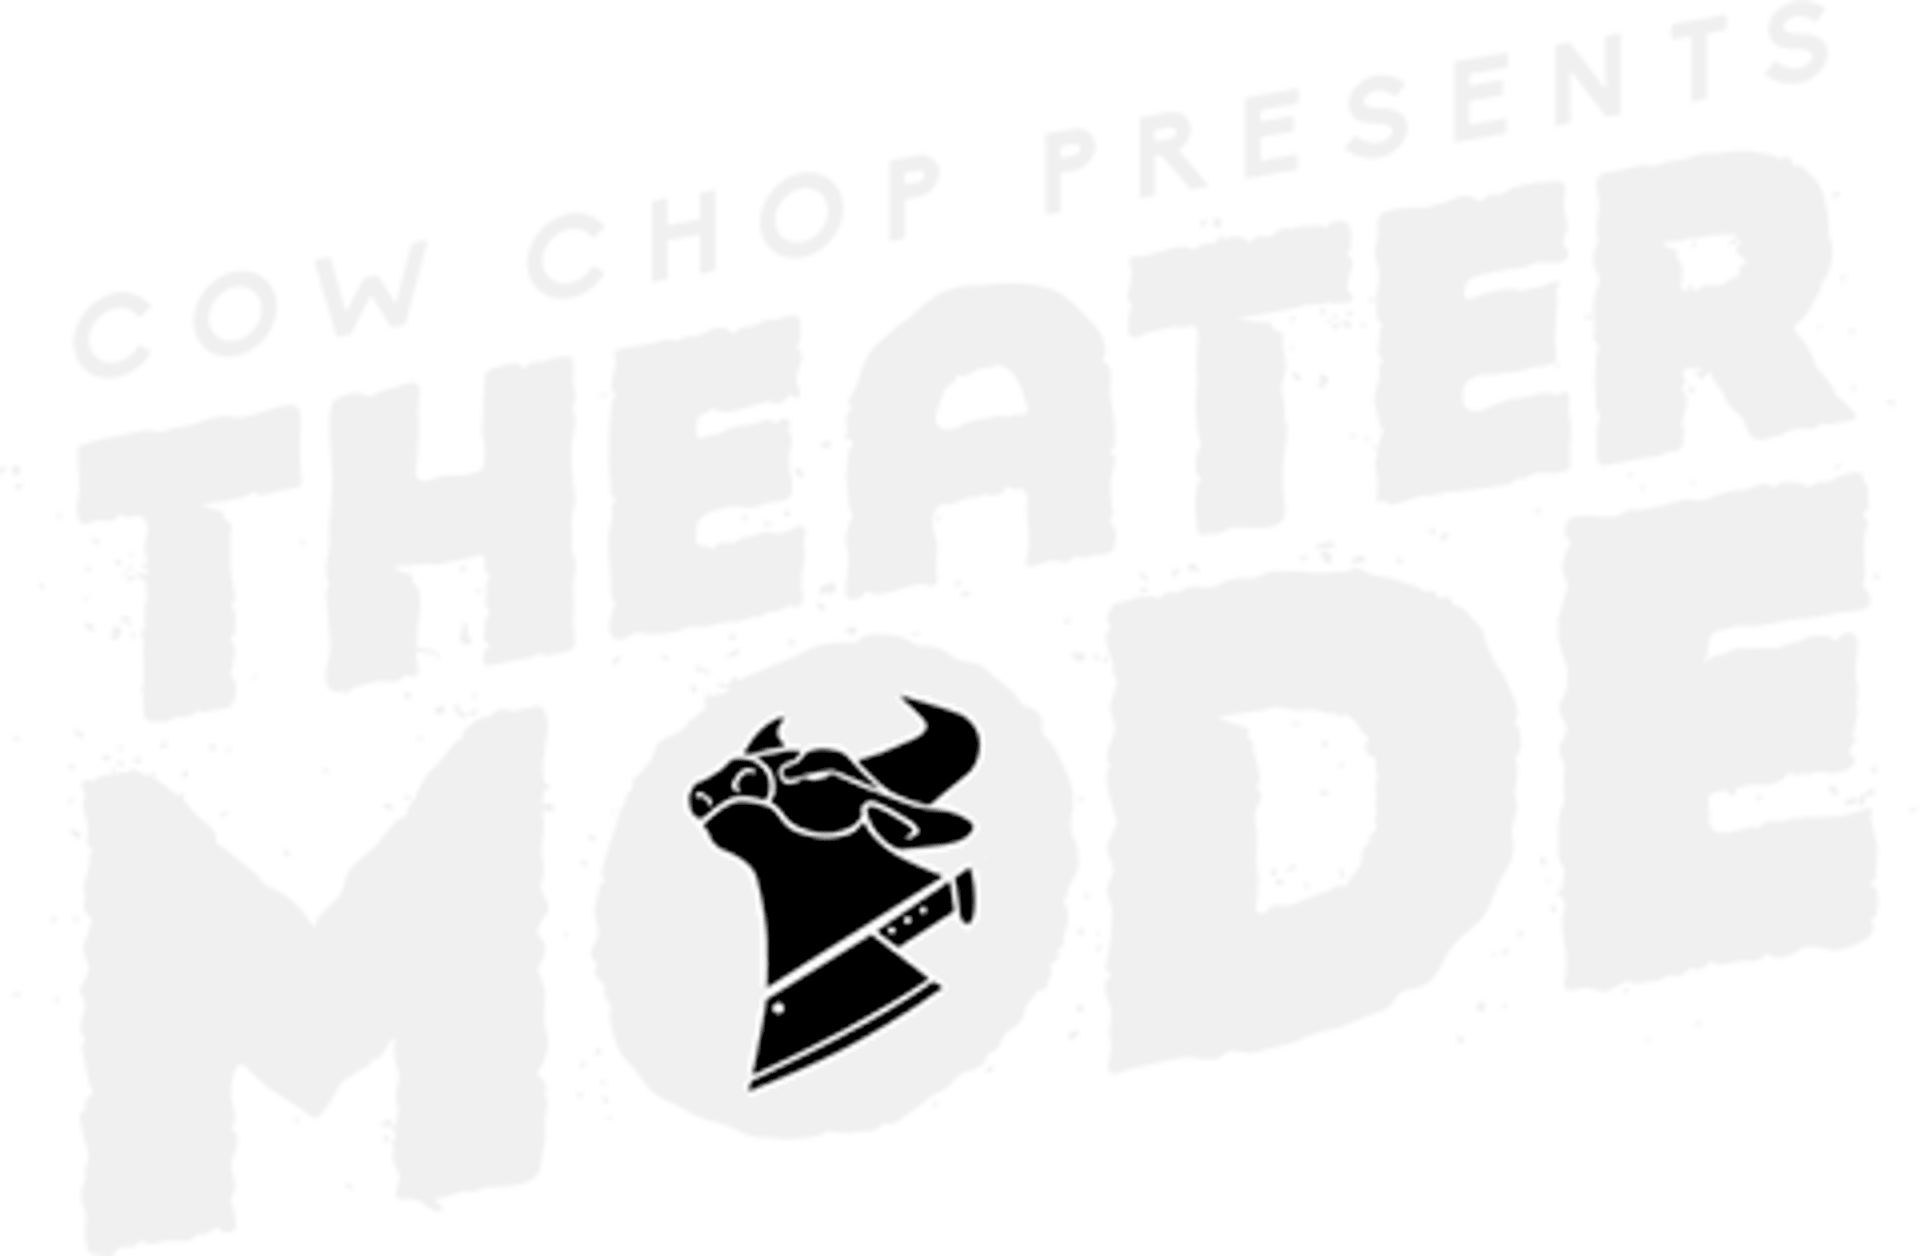 Cow Chop Presents Theater Mode